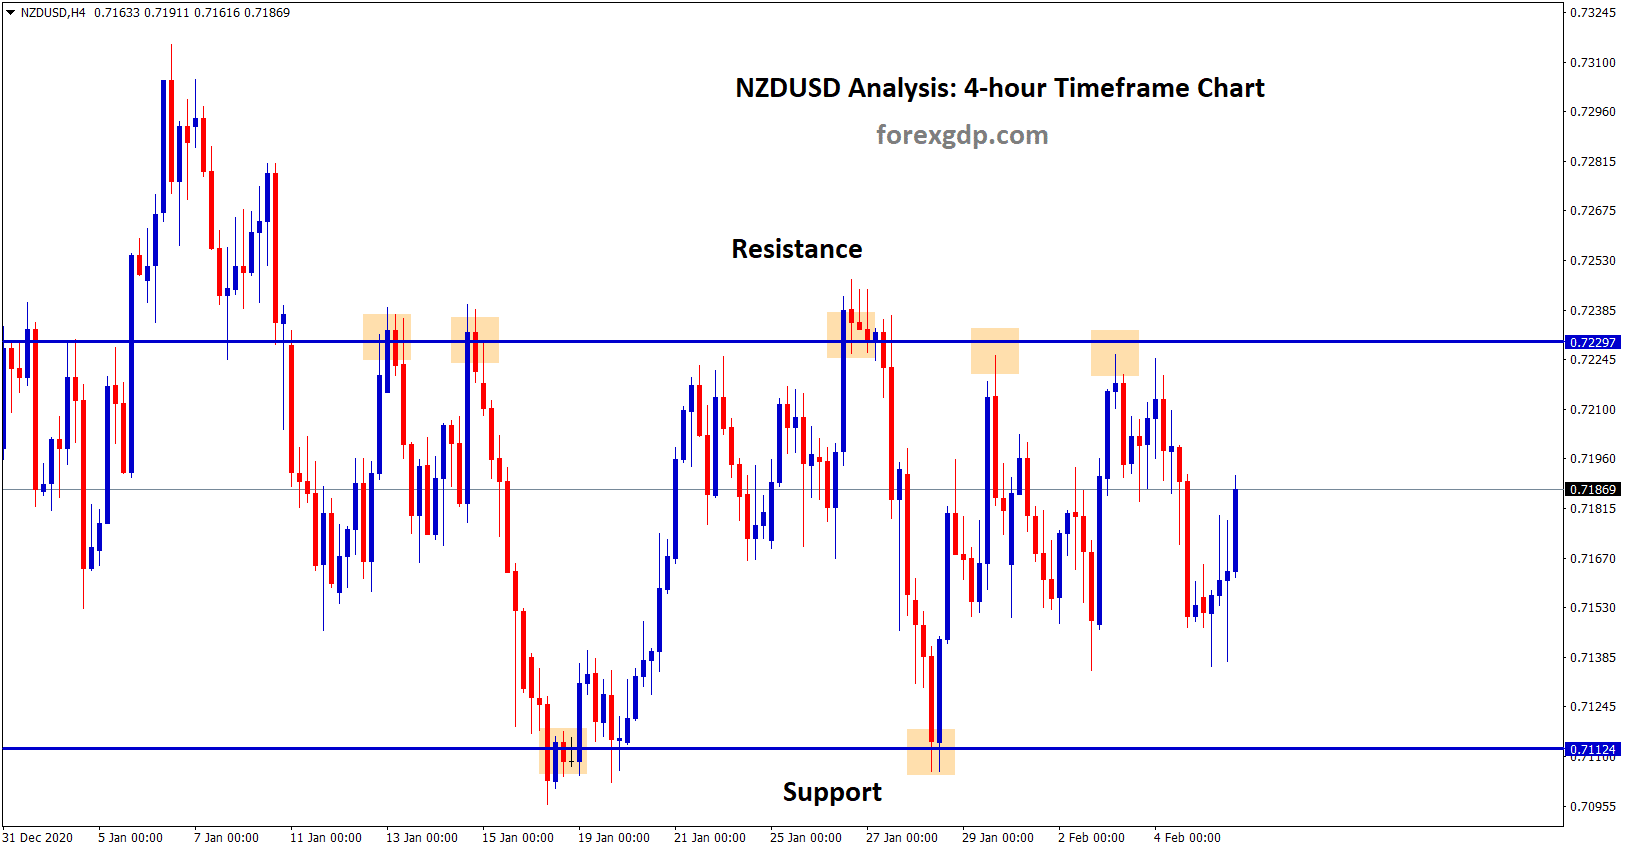 nzdusd ranging up and down between resistance and support